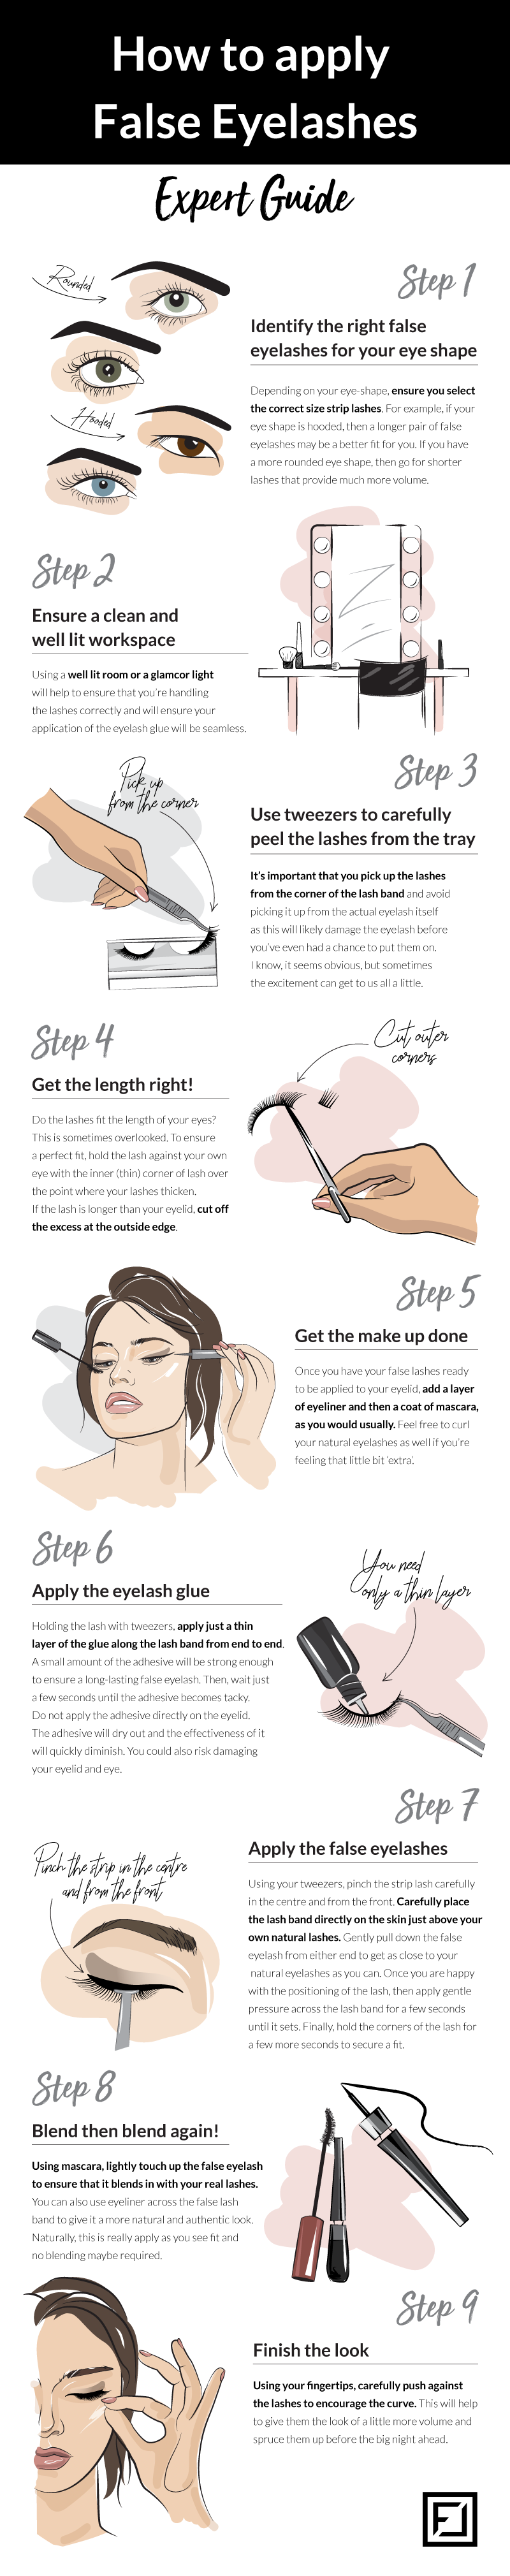 How to Apply False Eyelashes 9 Steps Expert Guide #infographic